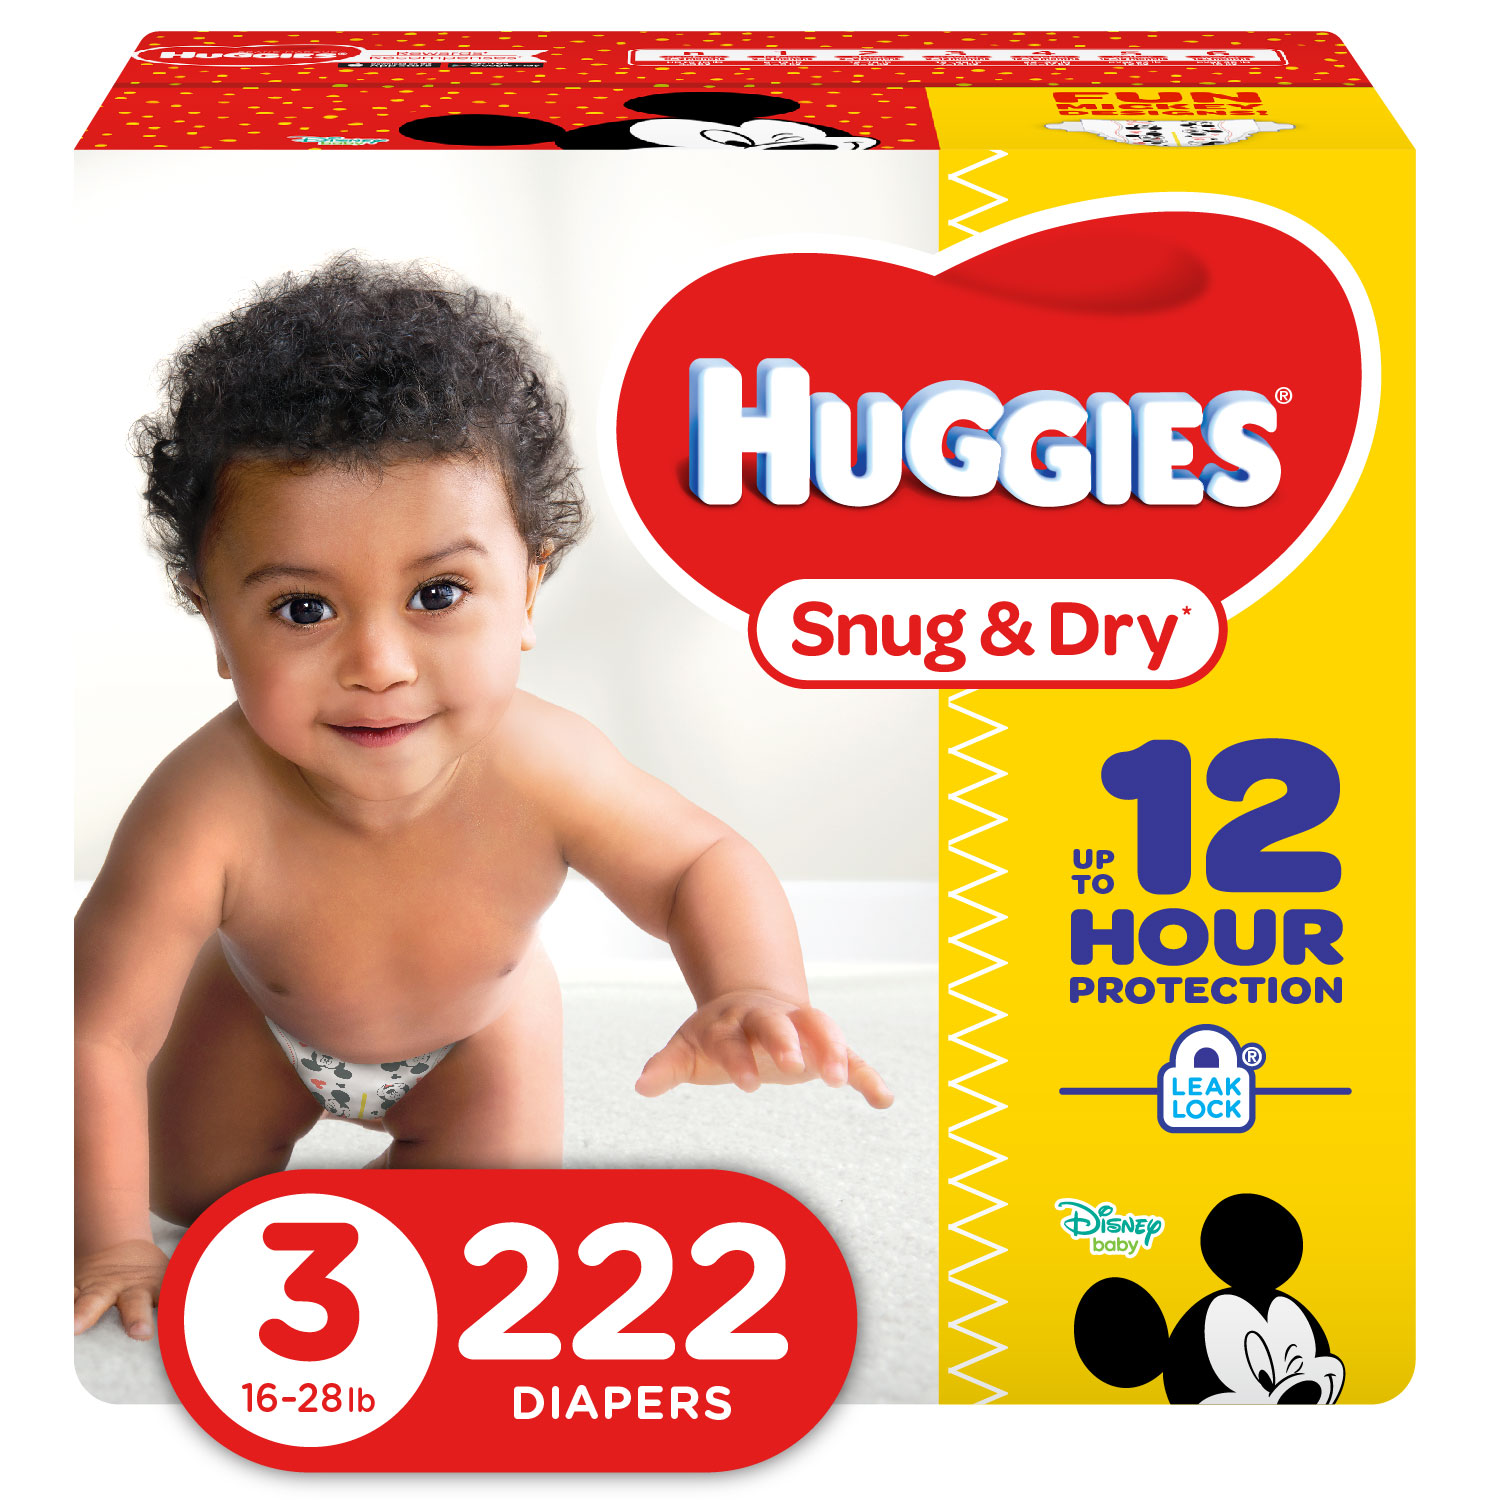 HUGGIES Snug & Dry Diapers, Size 3, 222 Diapers